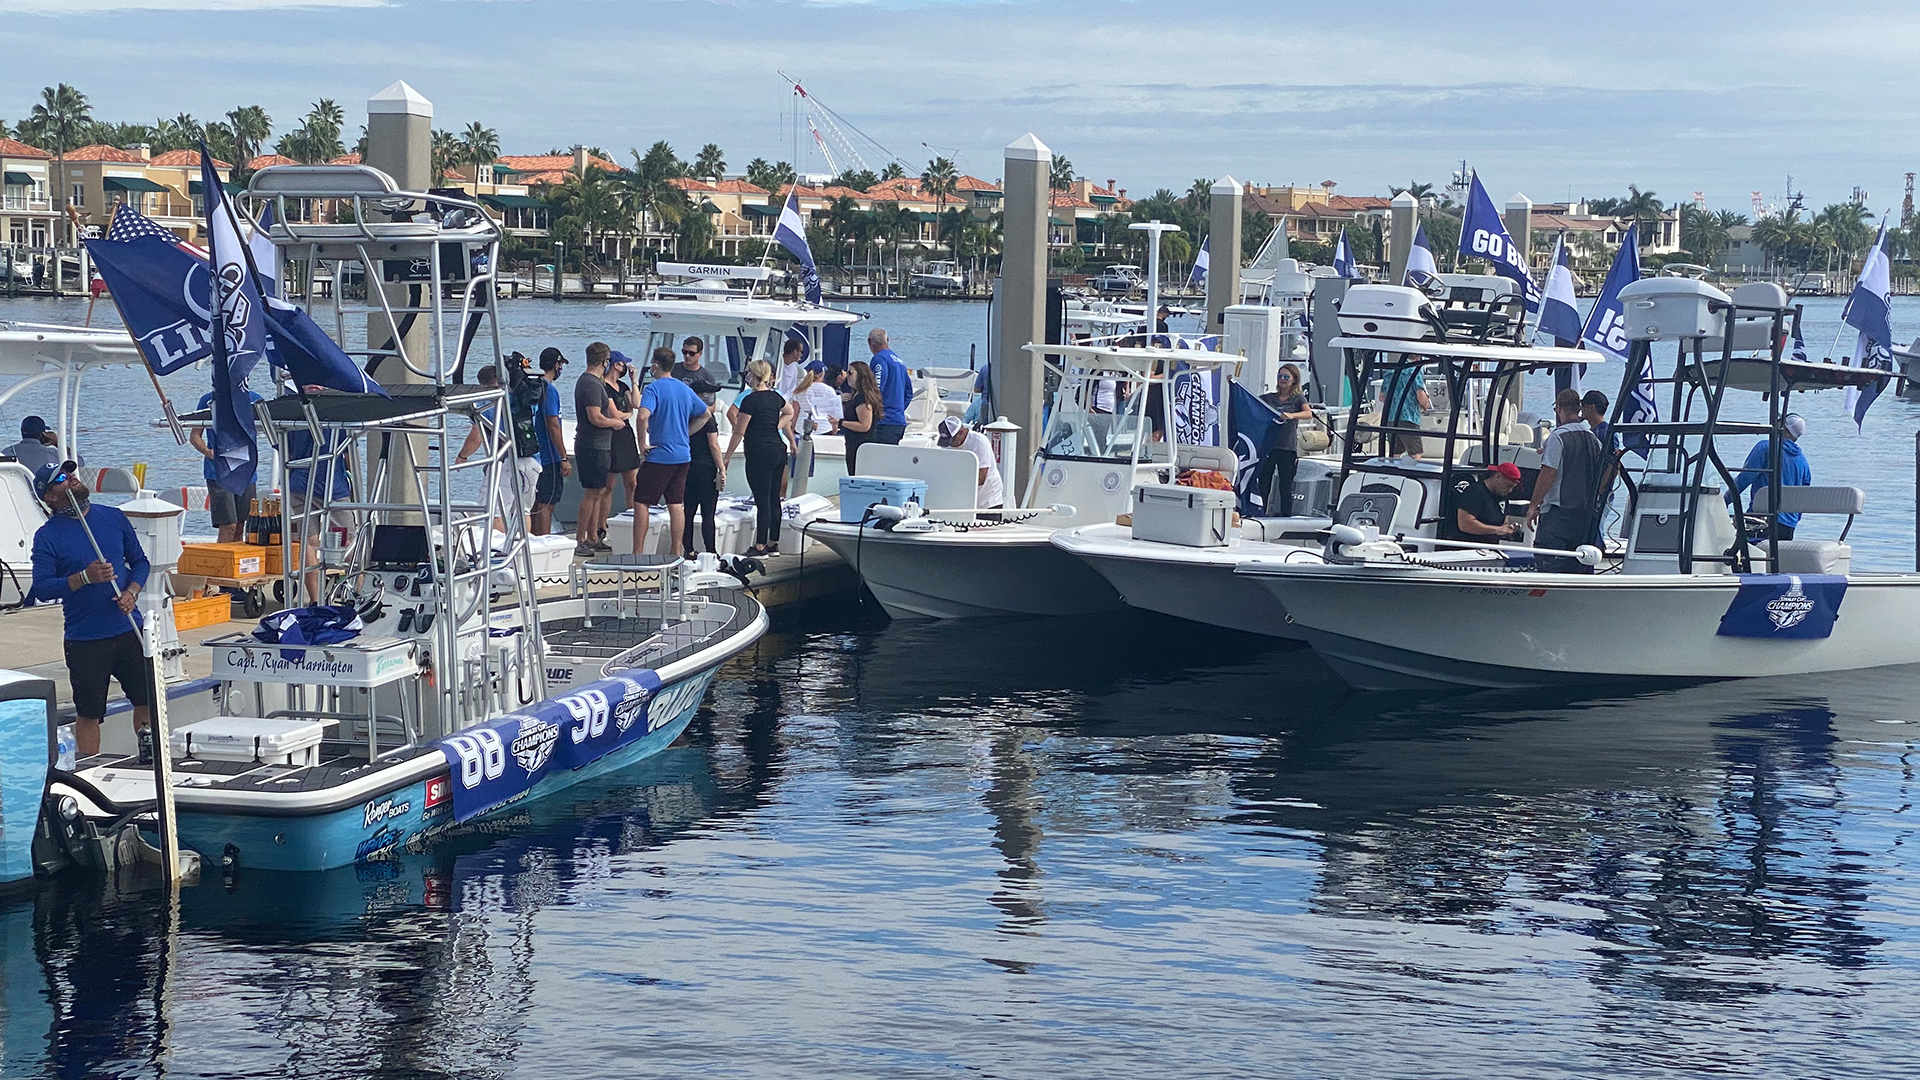 WATCH: Tampa celebrates Lightning's Stanley Cup win with boat